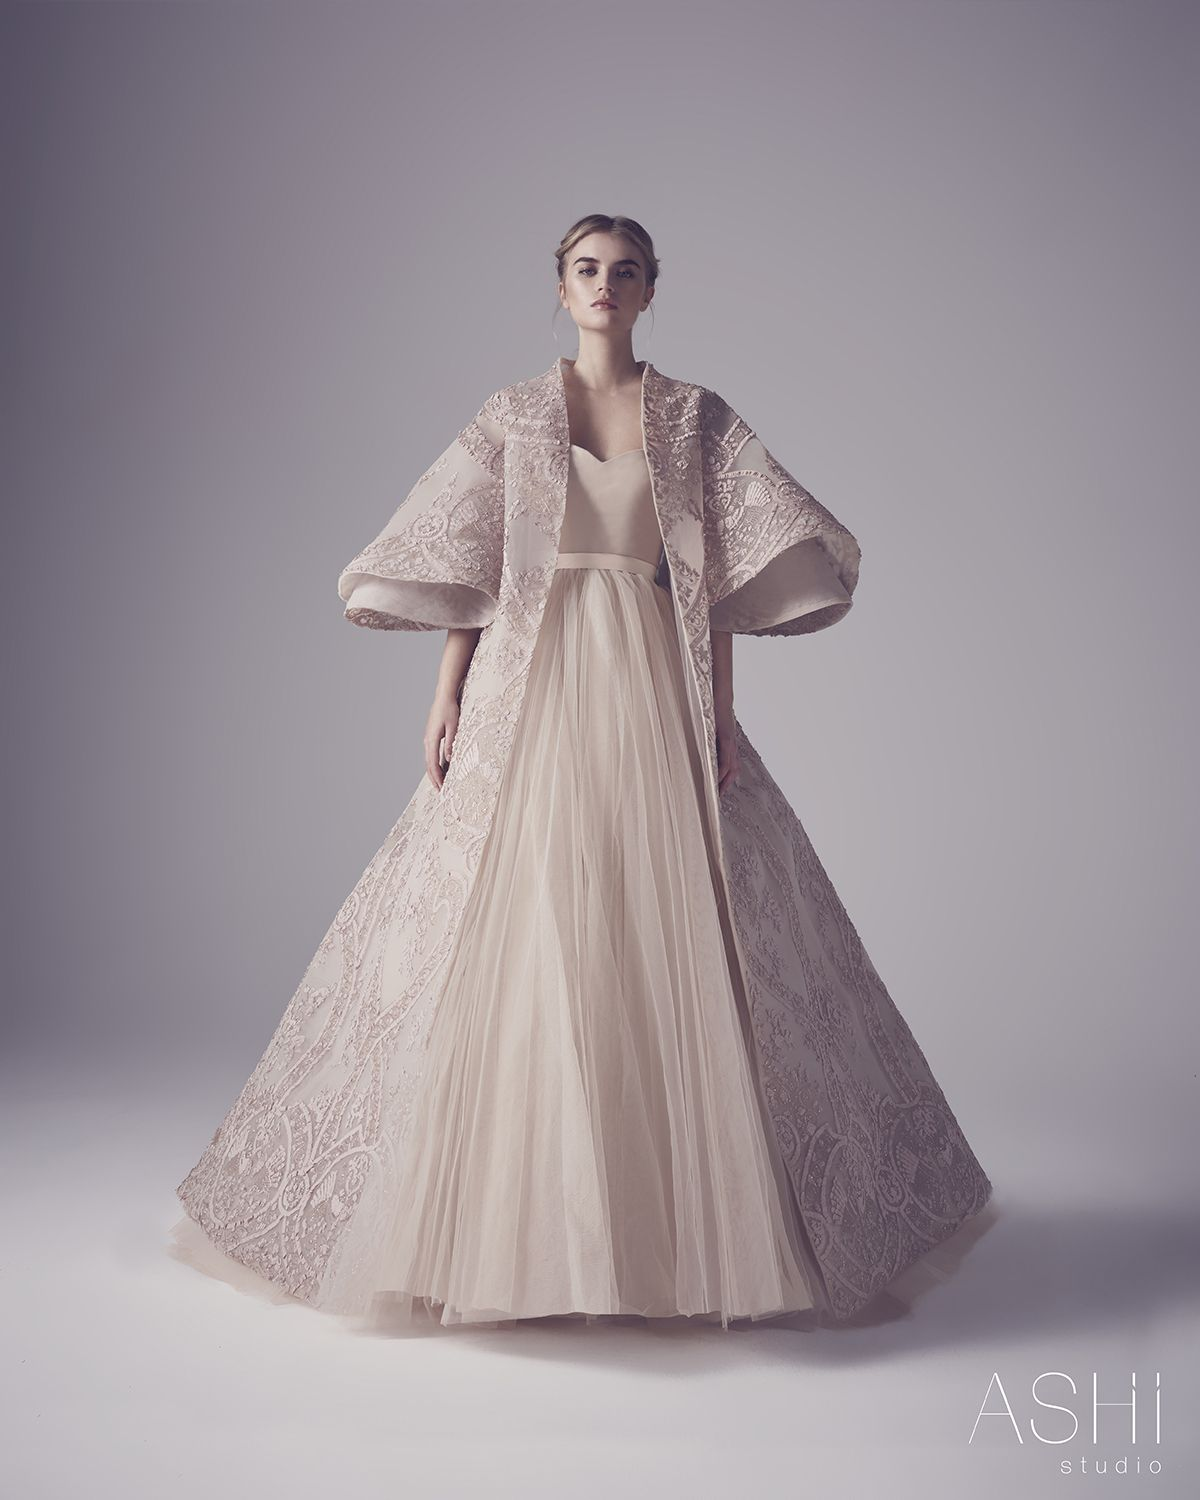 ashi weddnig dress, looks almost regal with the gown.